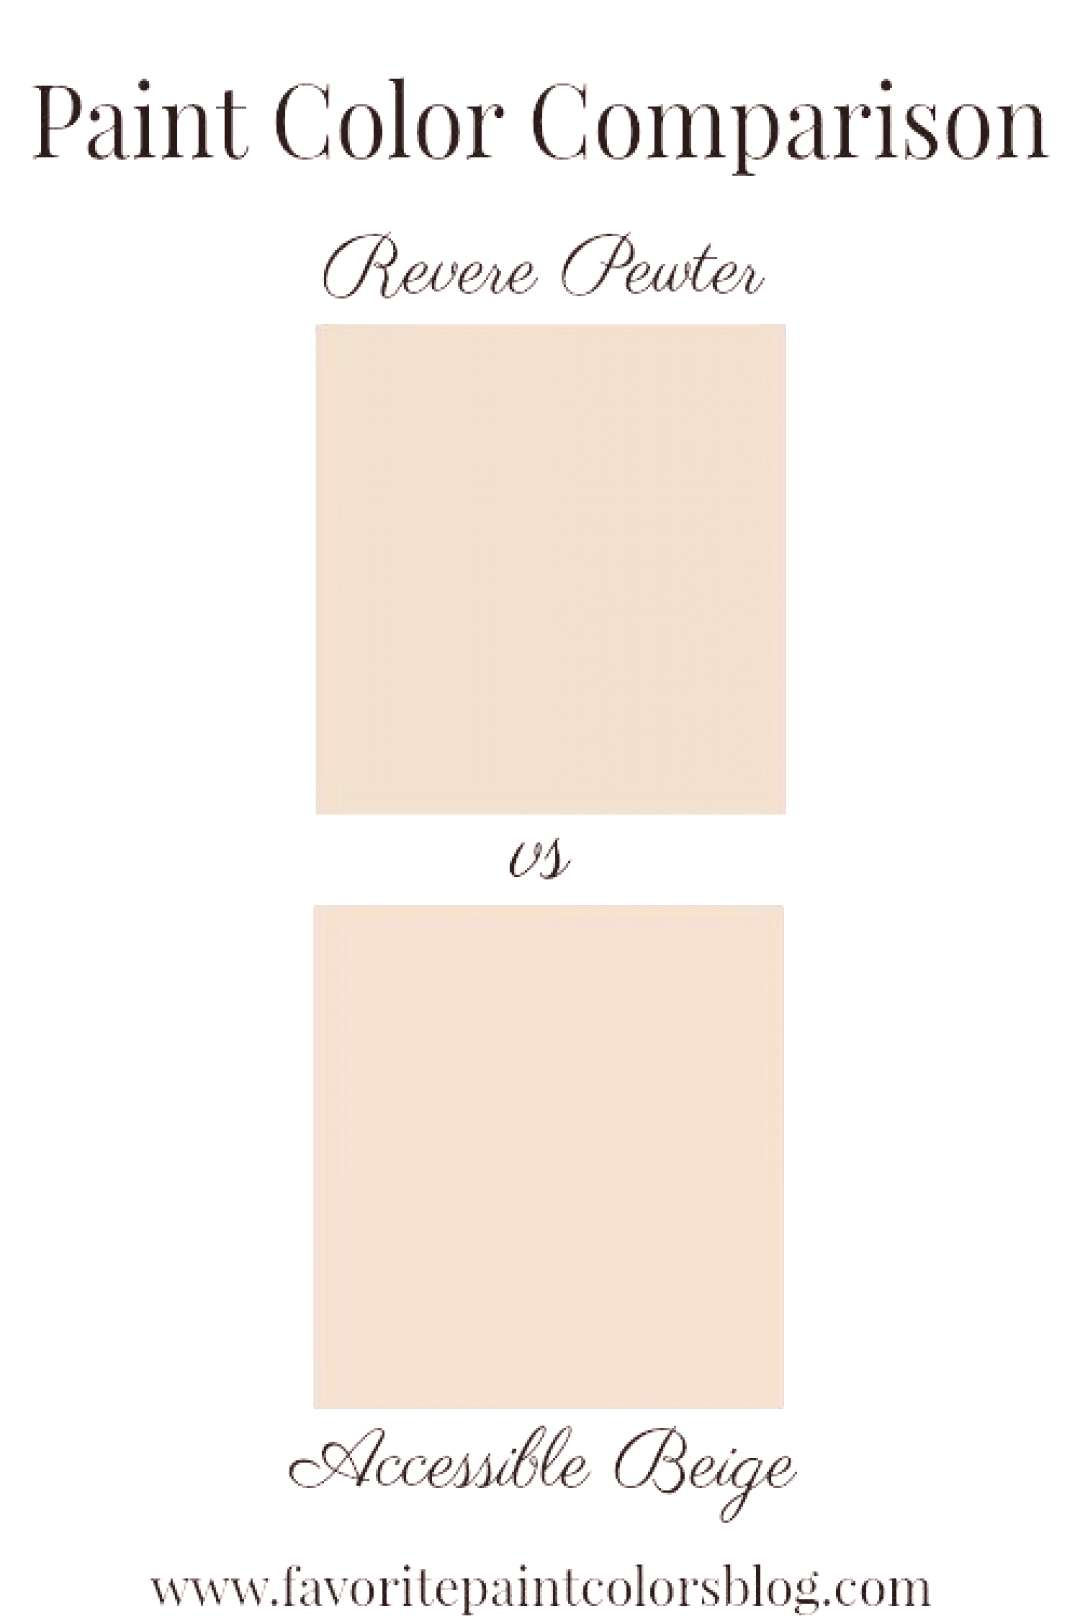 Reader's Question: Revere Pewter or Accessible Beige - Favorite Paint Colors Blog